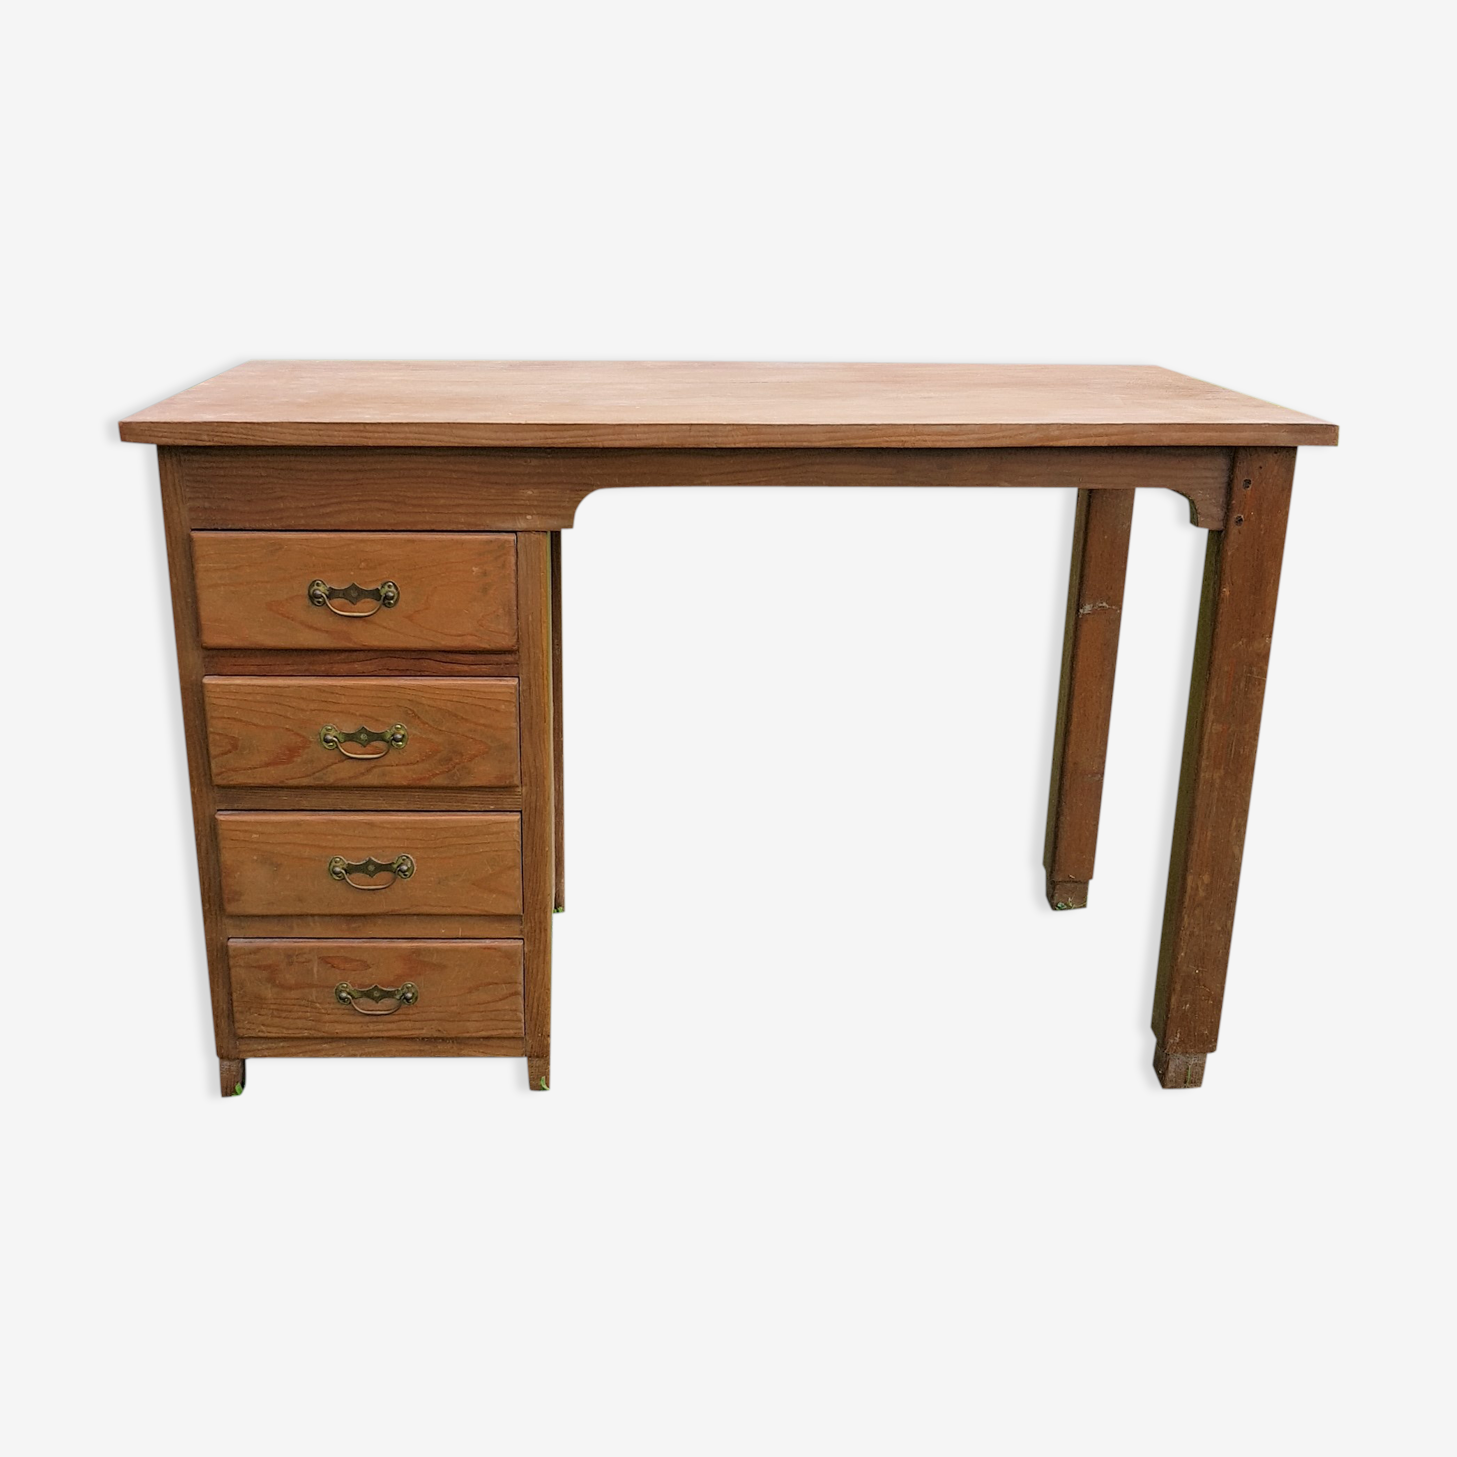 Office 4 old wooden drawers